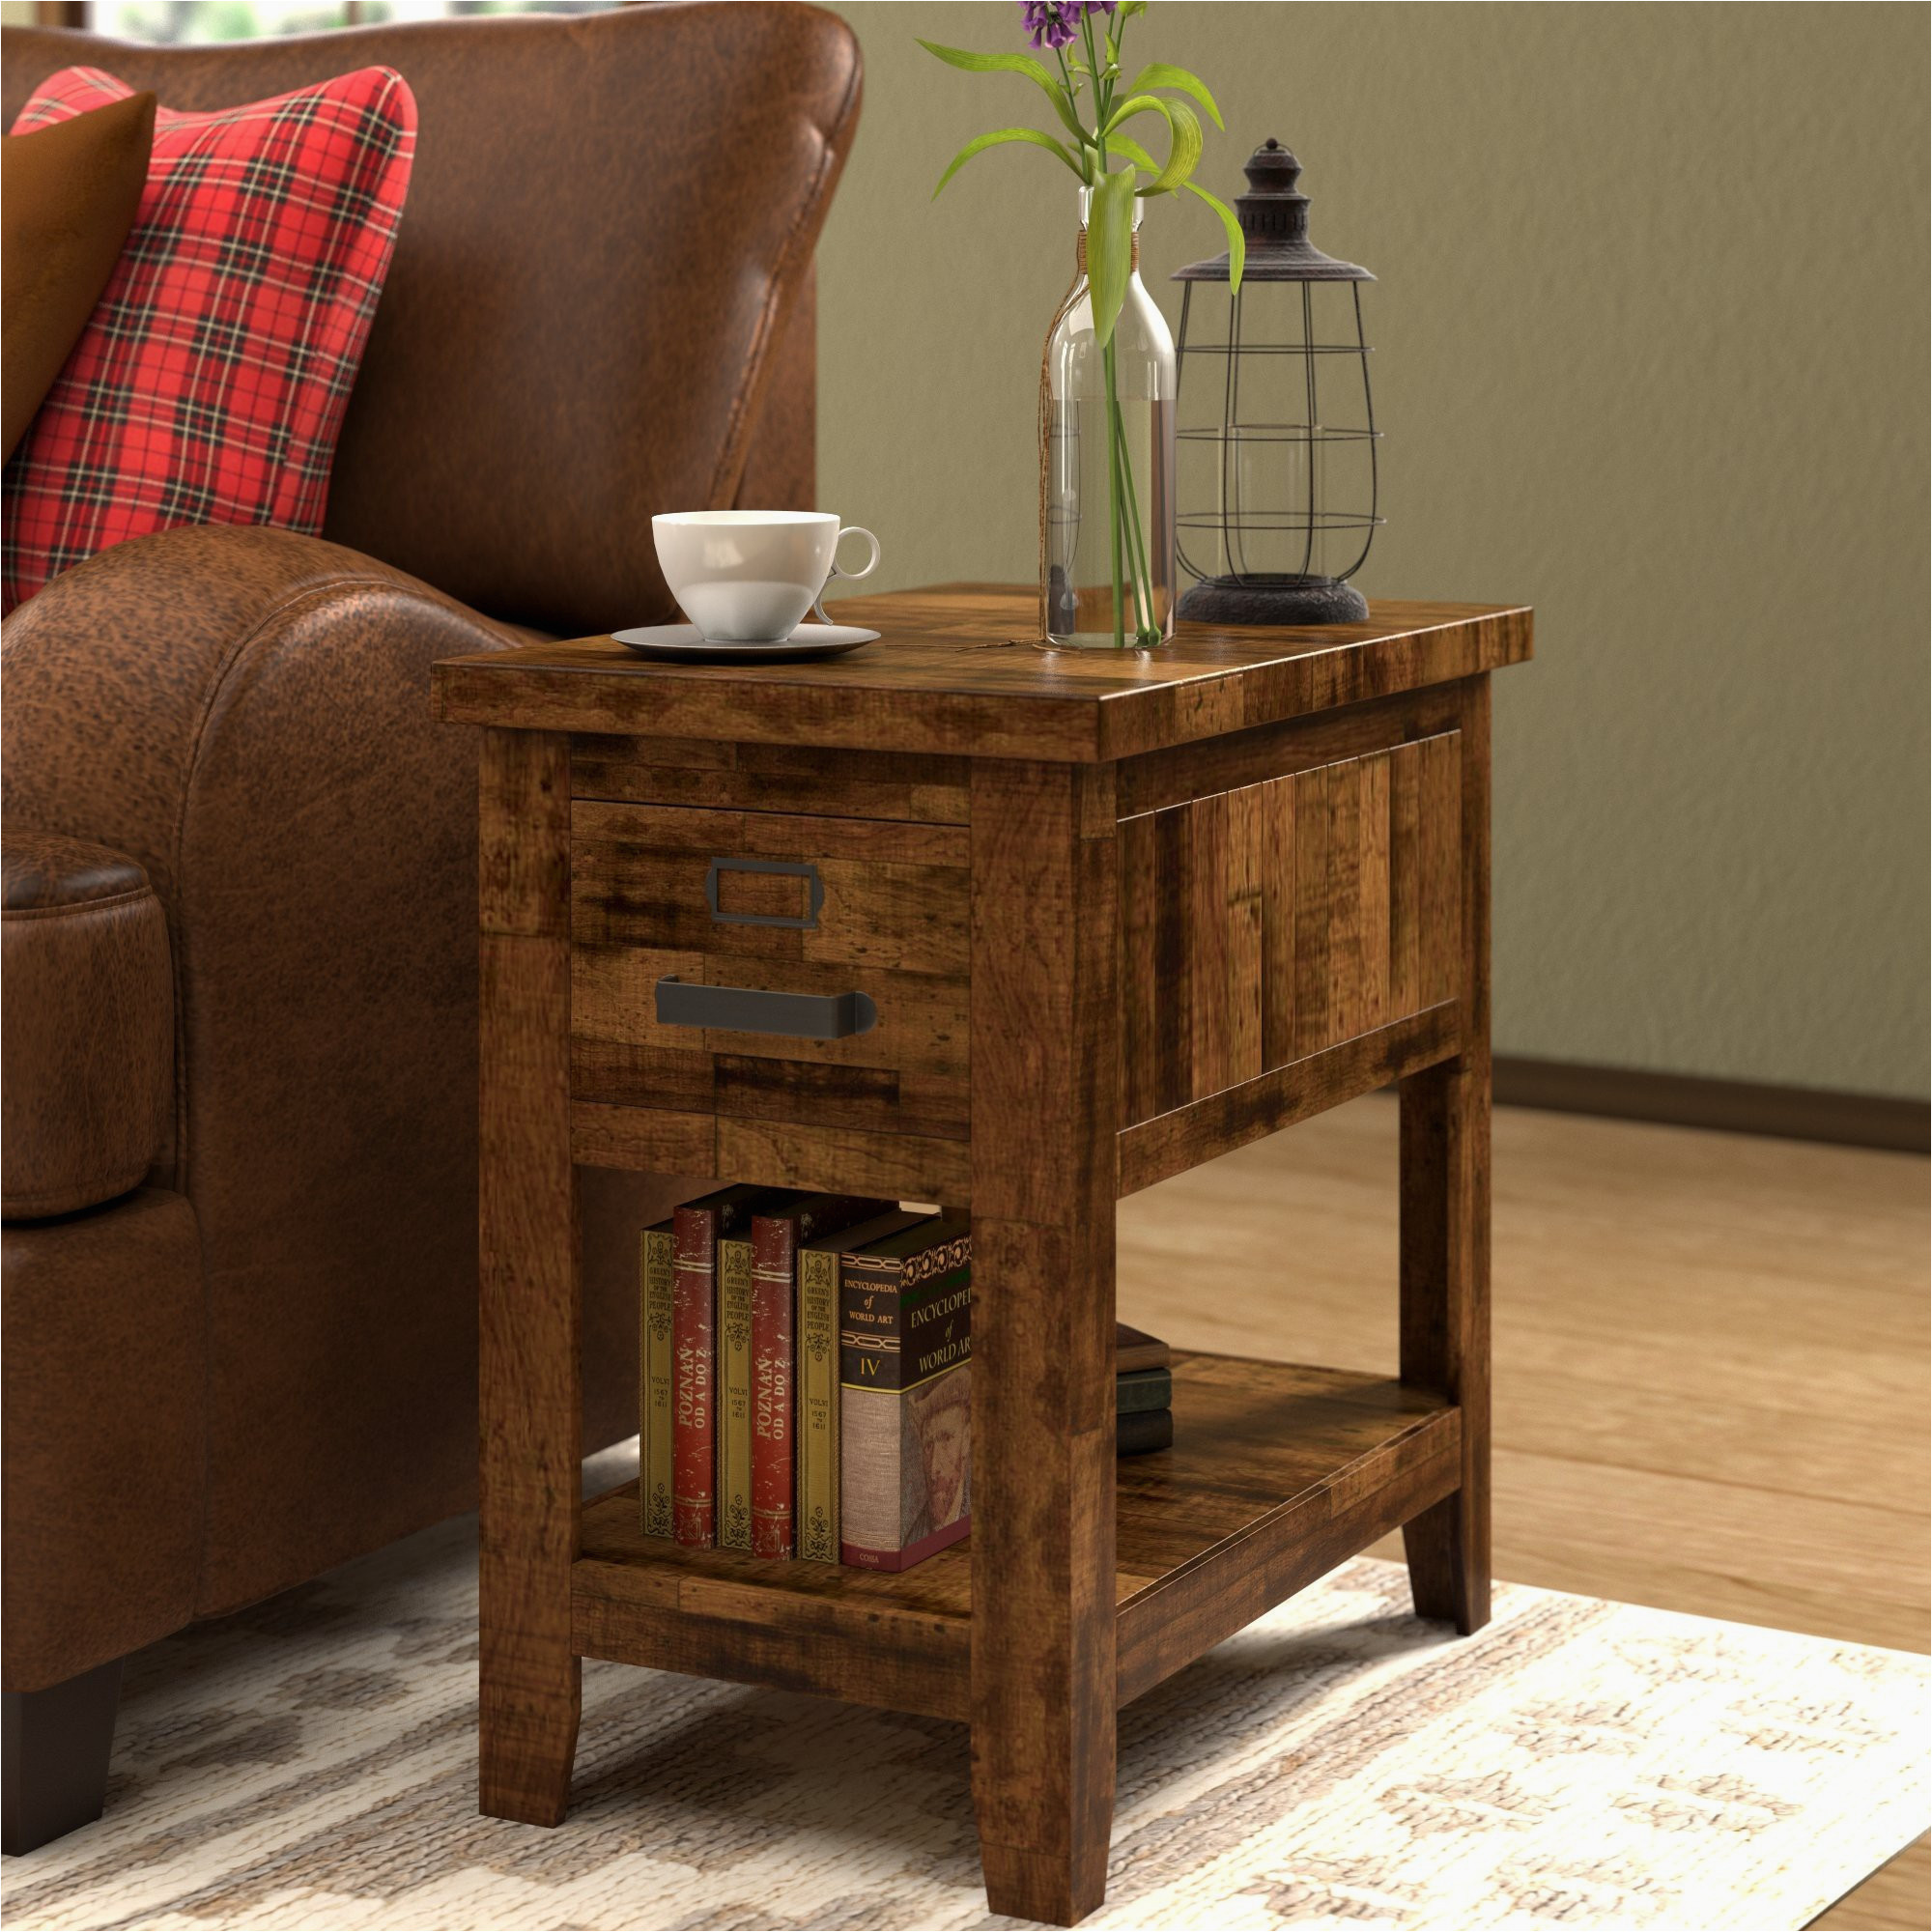 enchanting home depot furniture legs with iron coffee table legs lovely 40 new wrought iron furniture legs